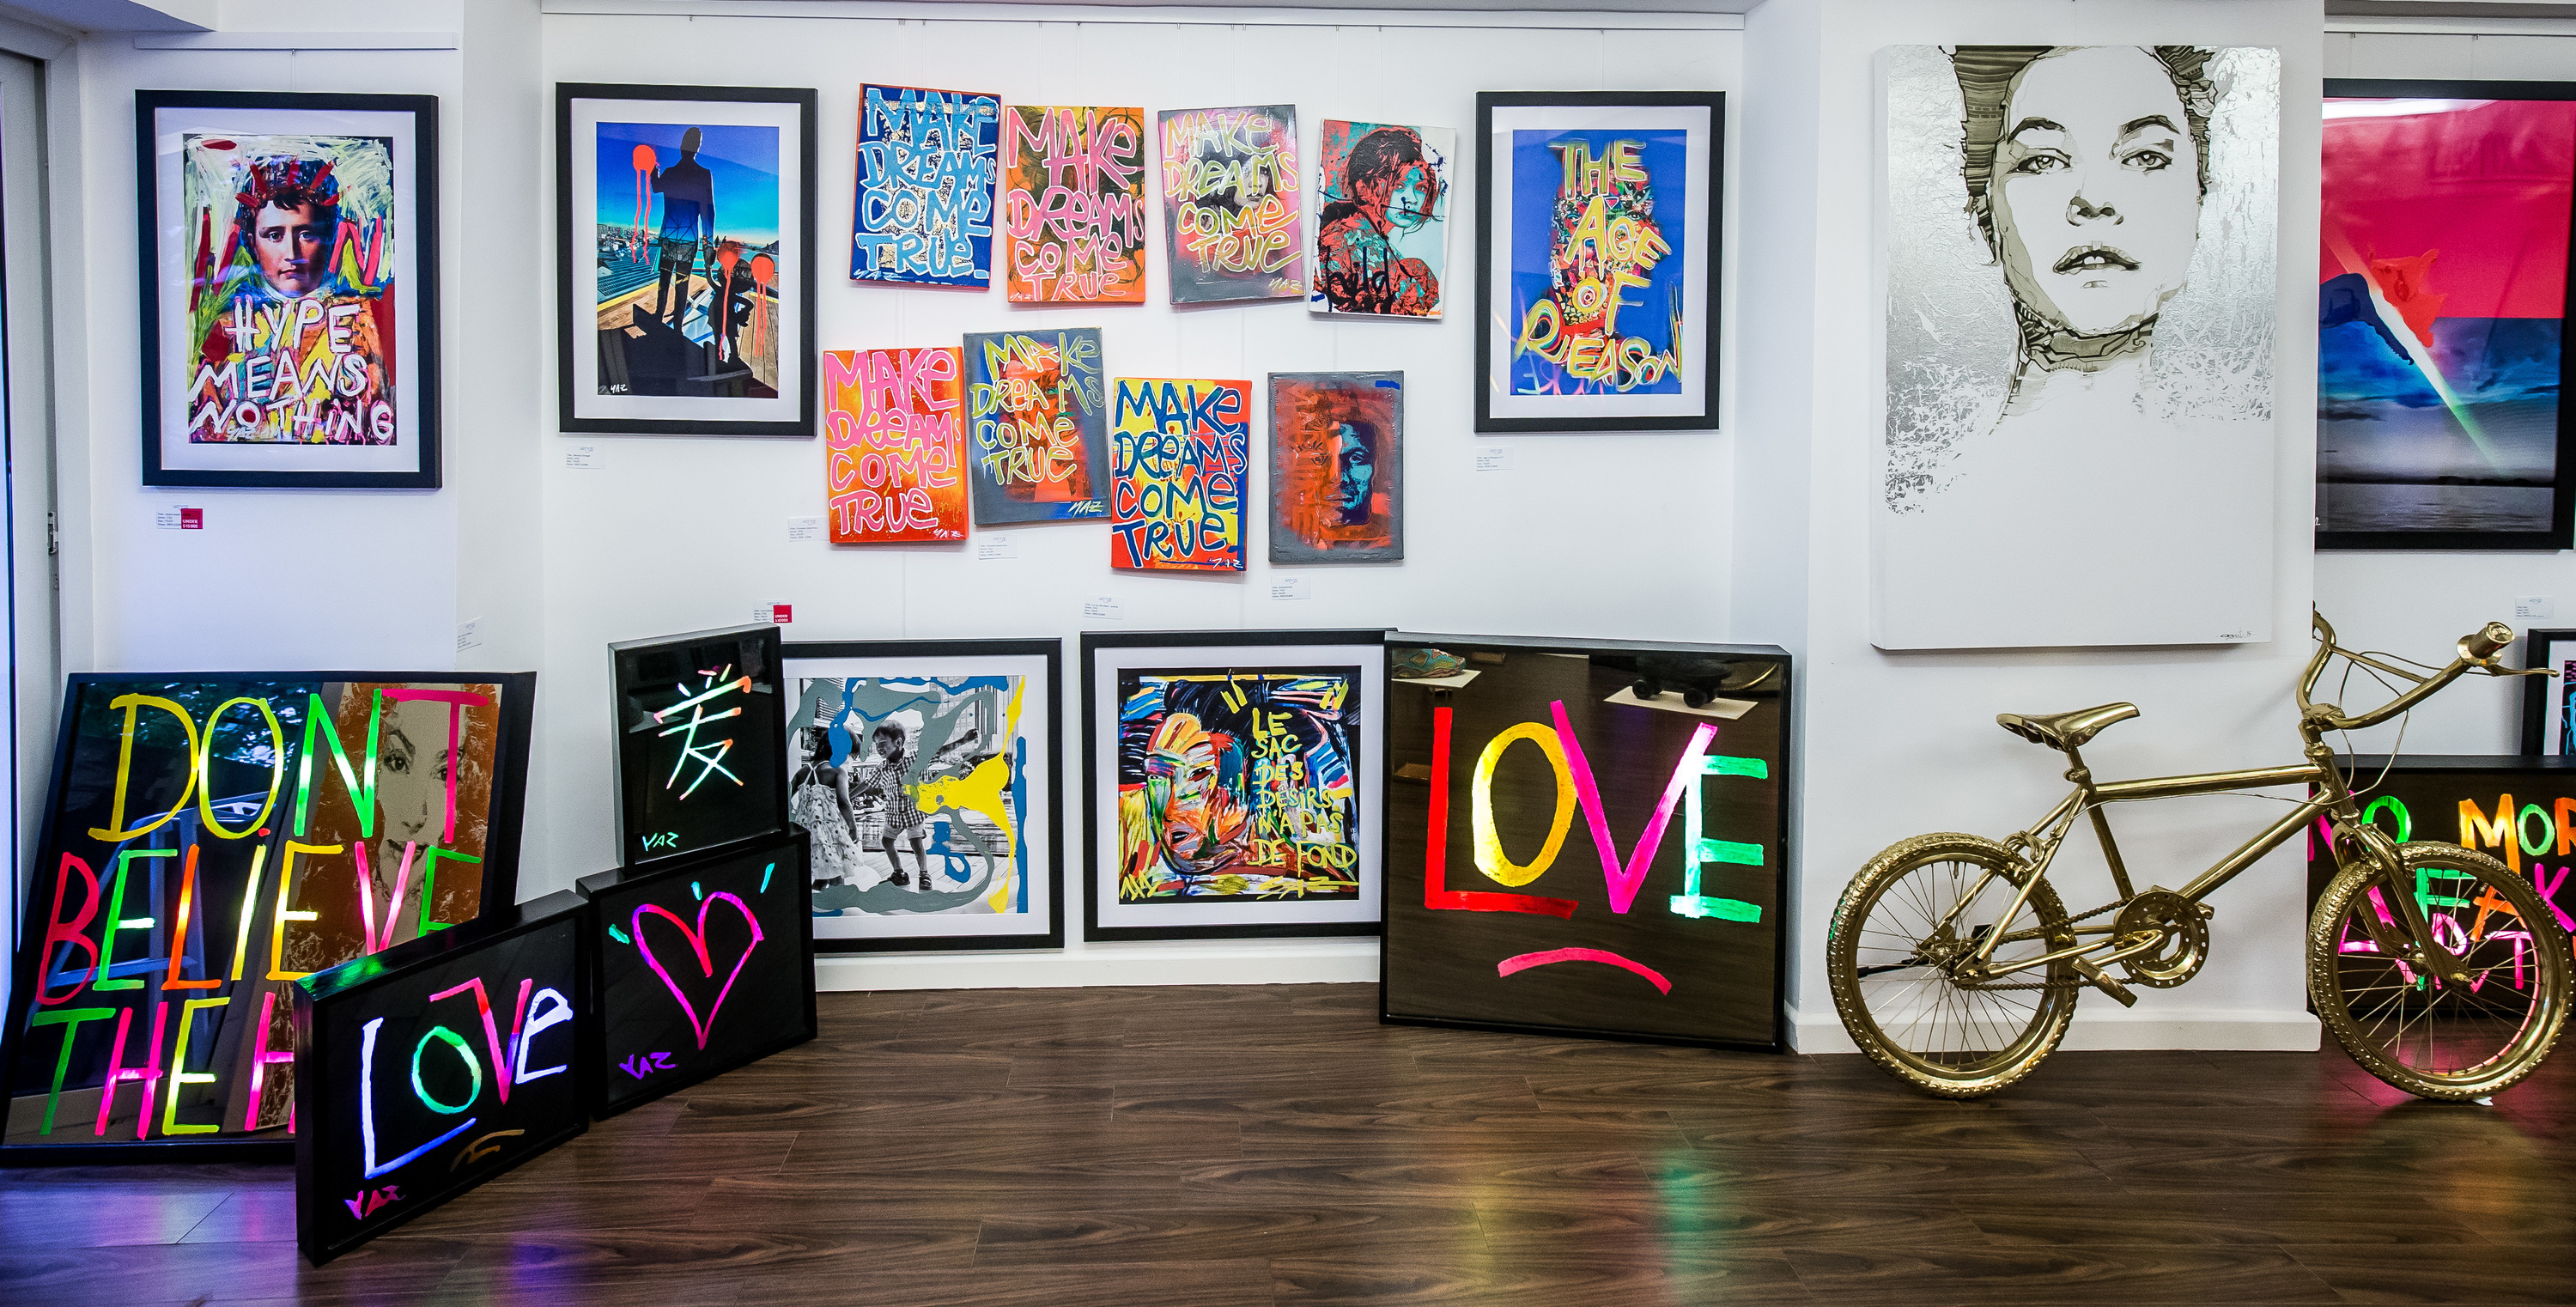 Best galleries in Hong Kong for street art